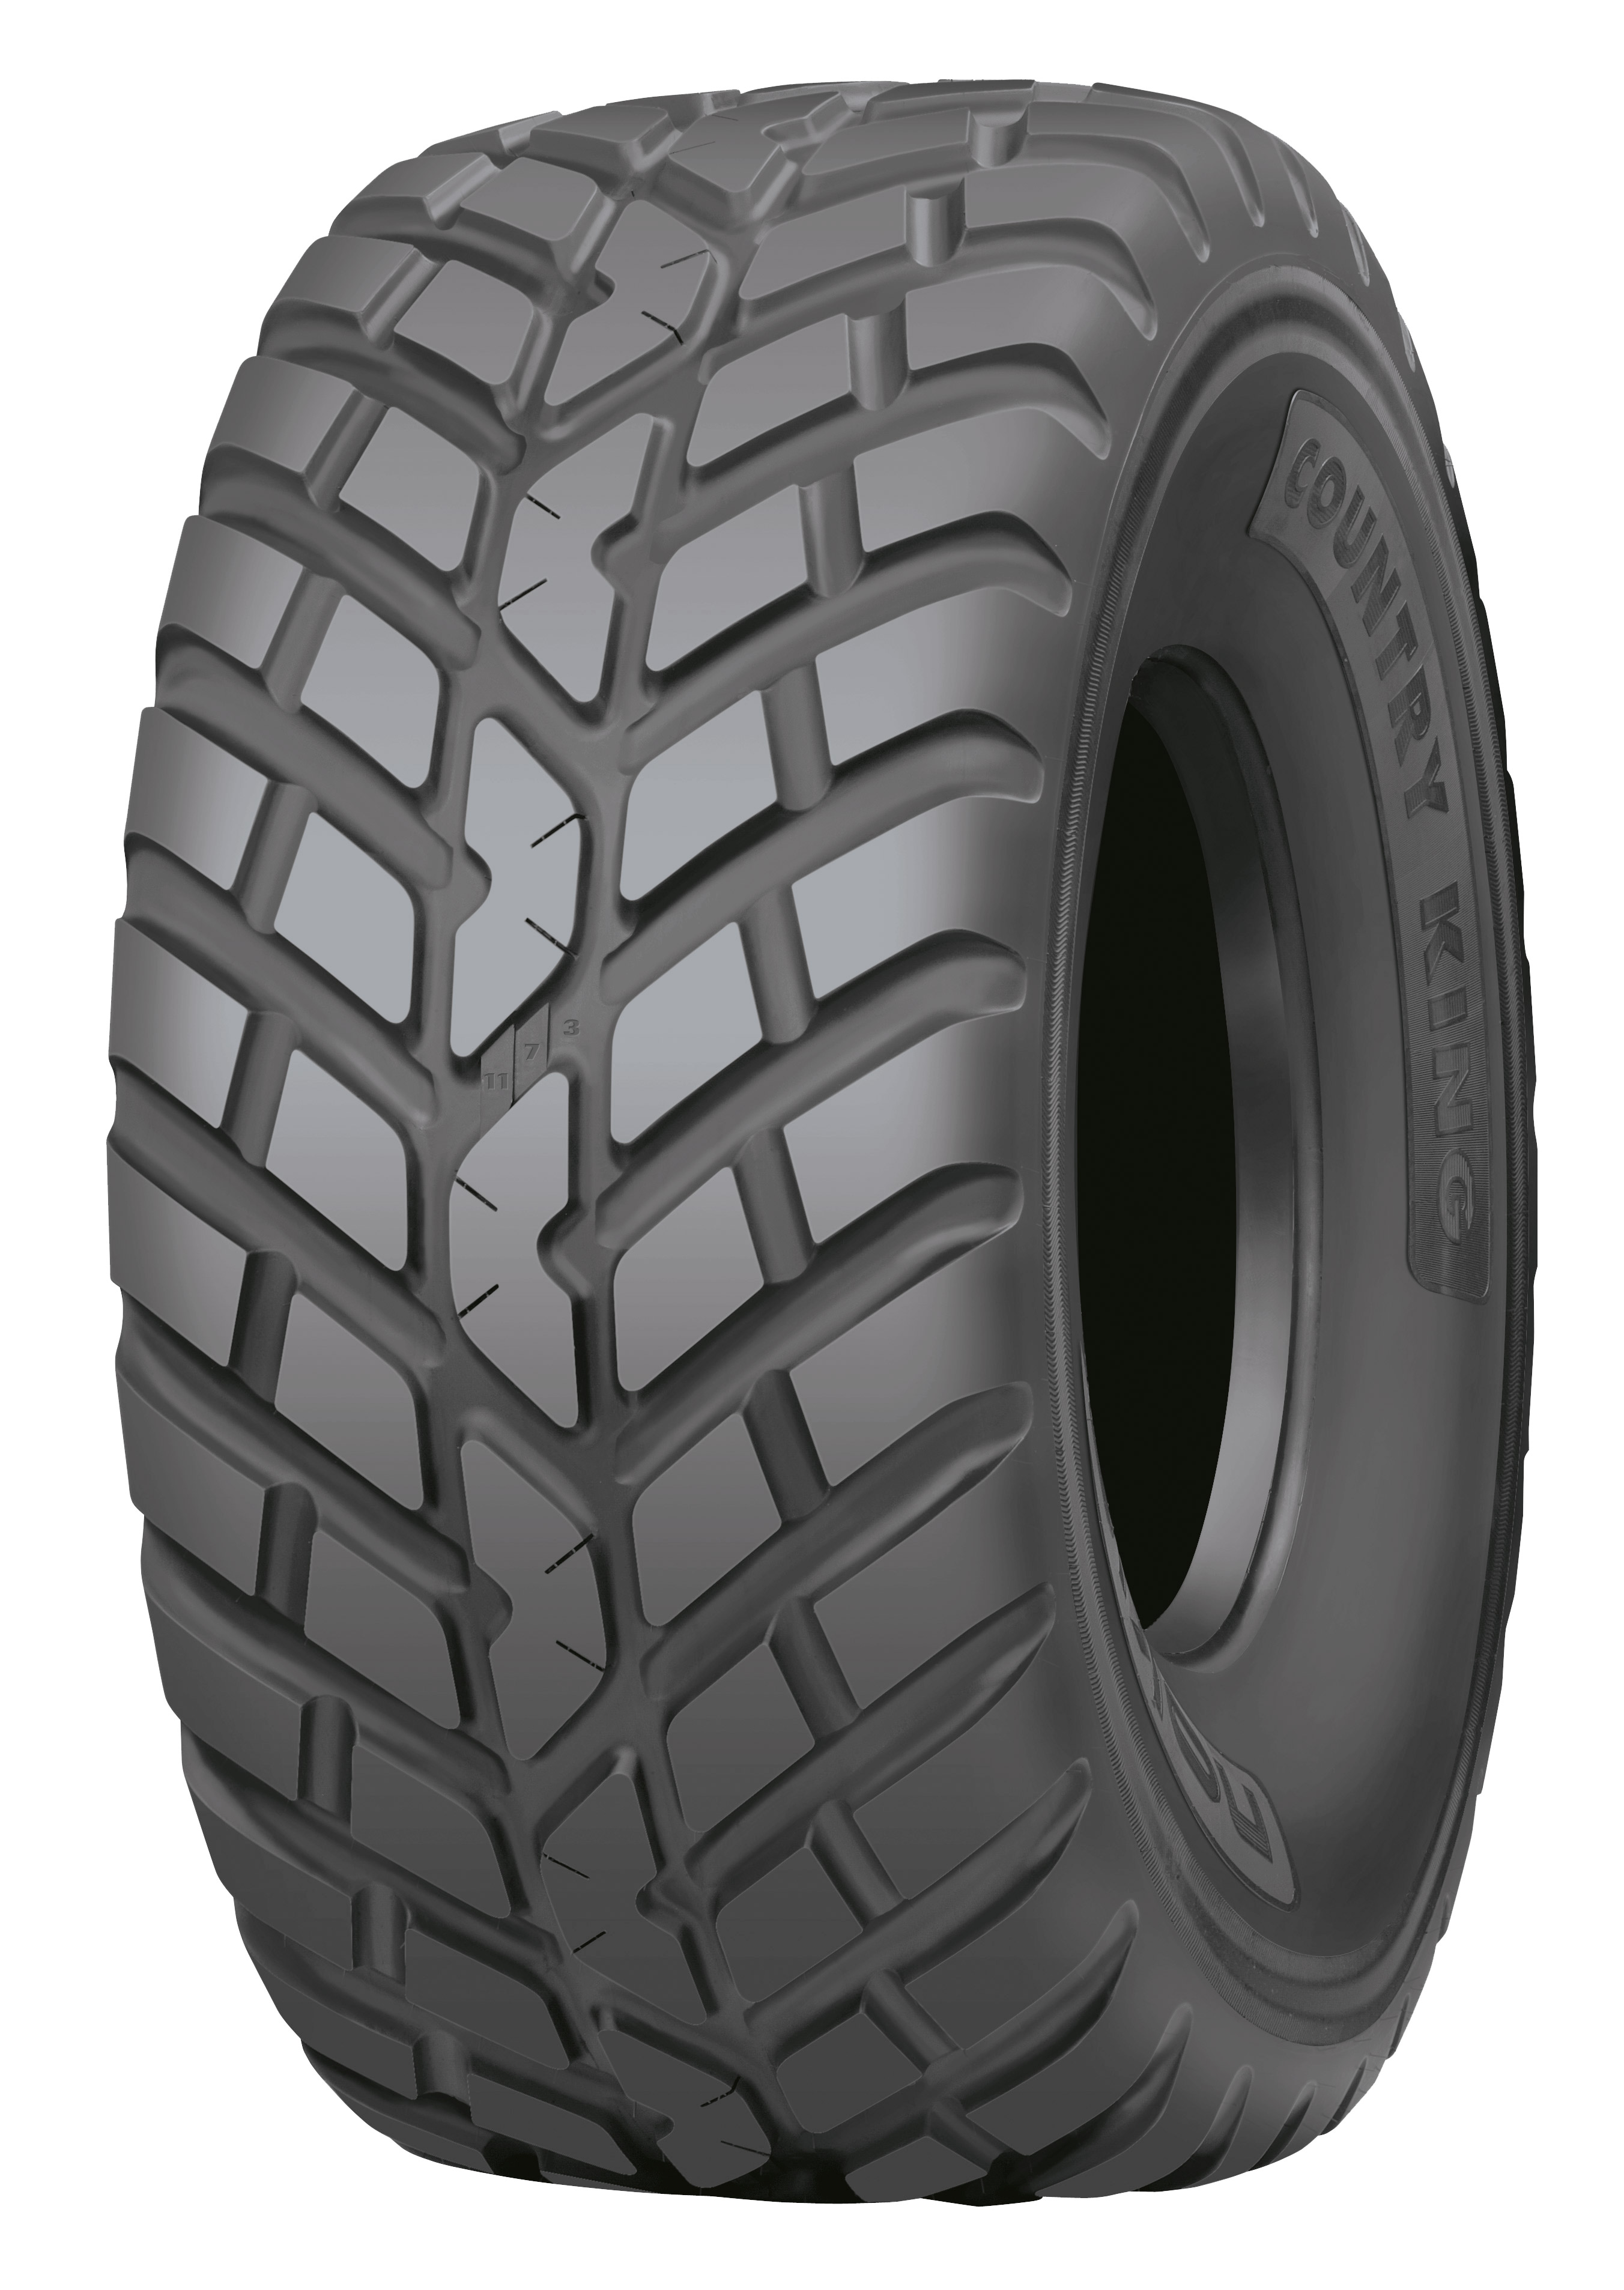 650/65R30.5 NOKIAN COUNTRY KING 176D